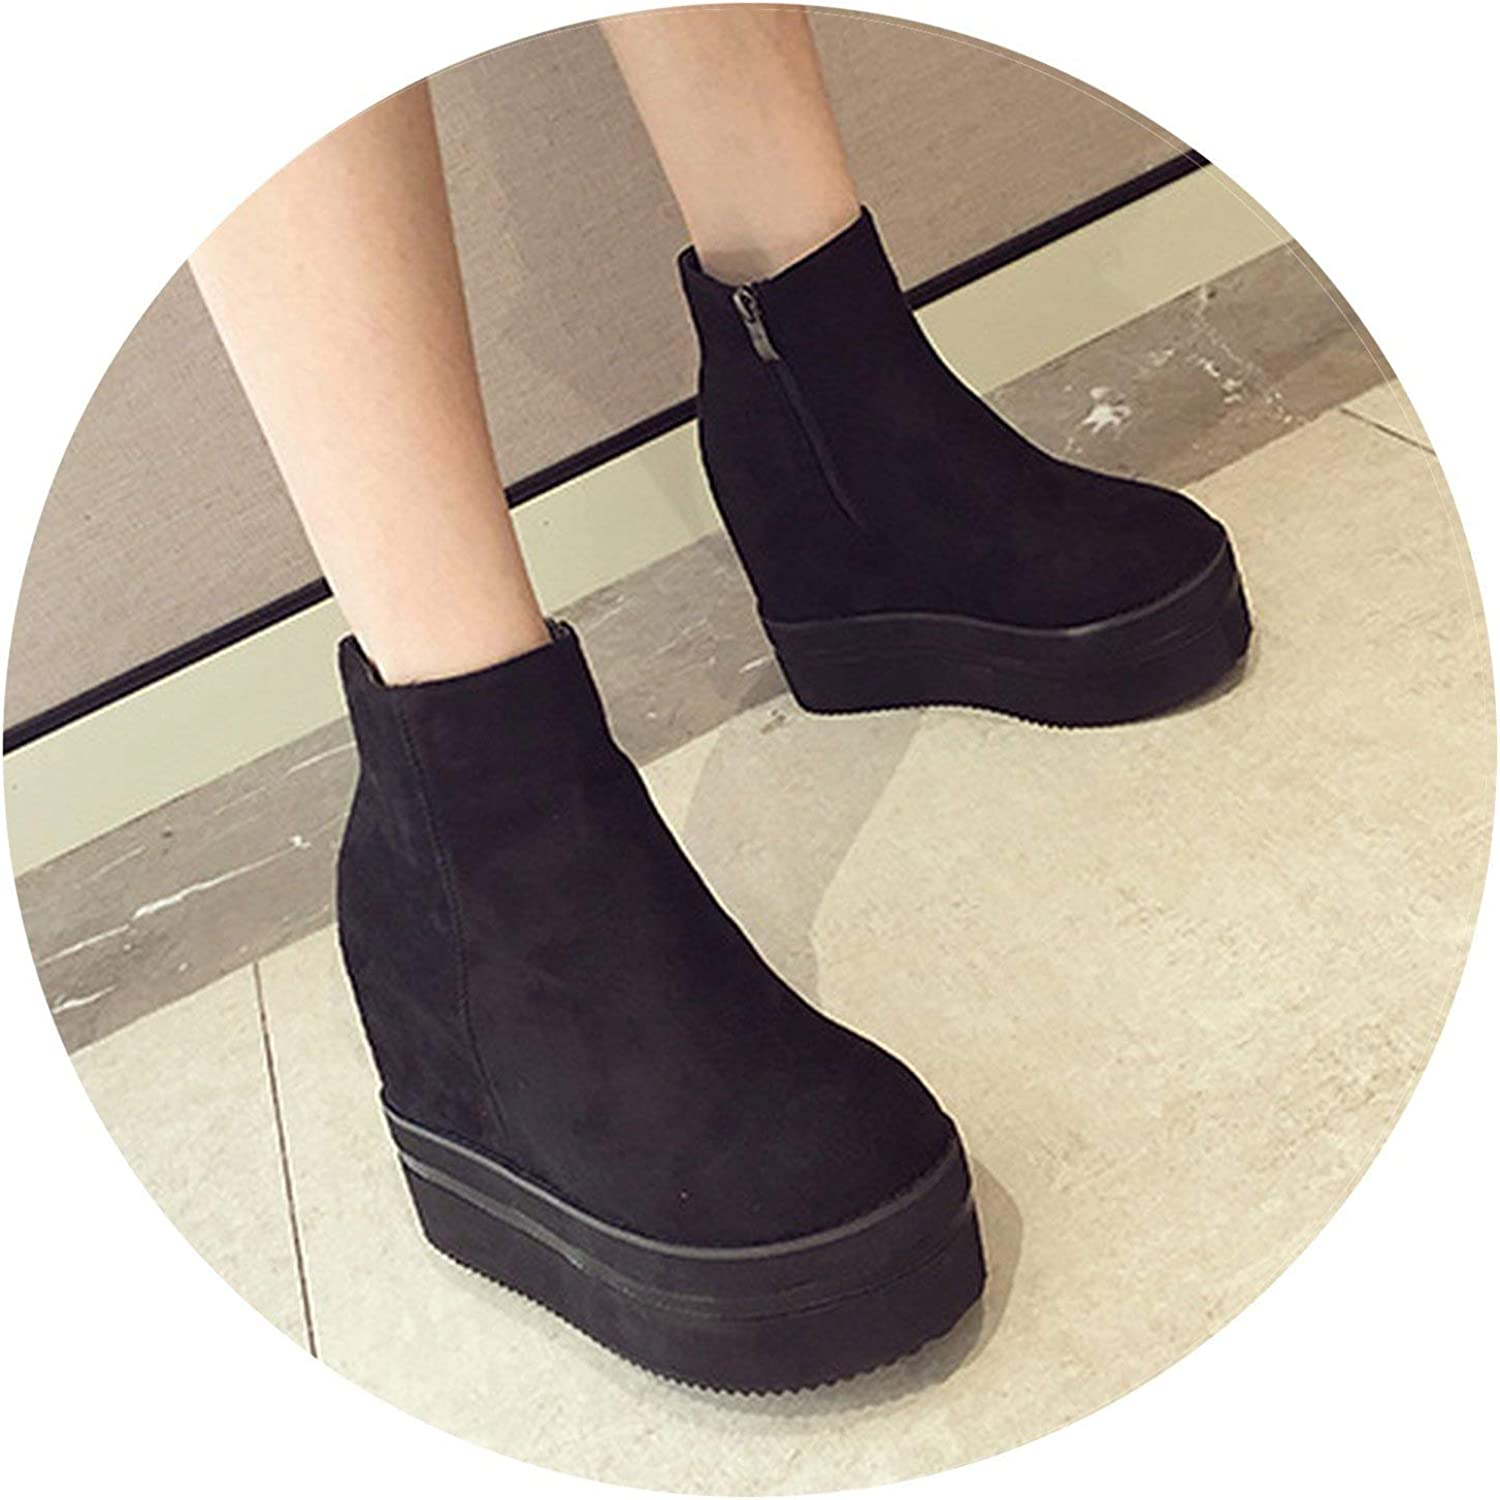 Wedges Platform Women shoes Autumn Ankle Boots Height Increasing High Heels Suede shoes